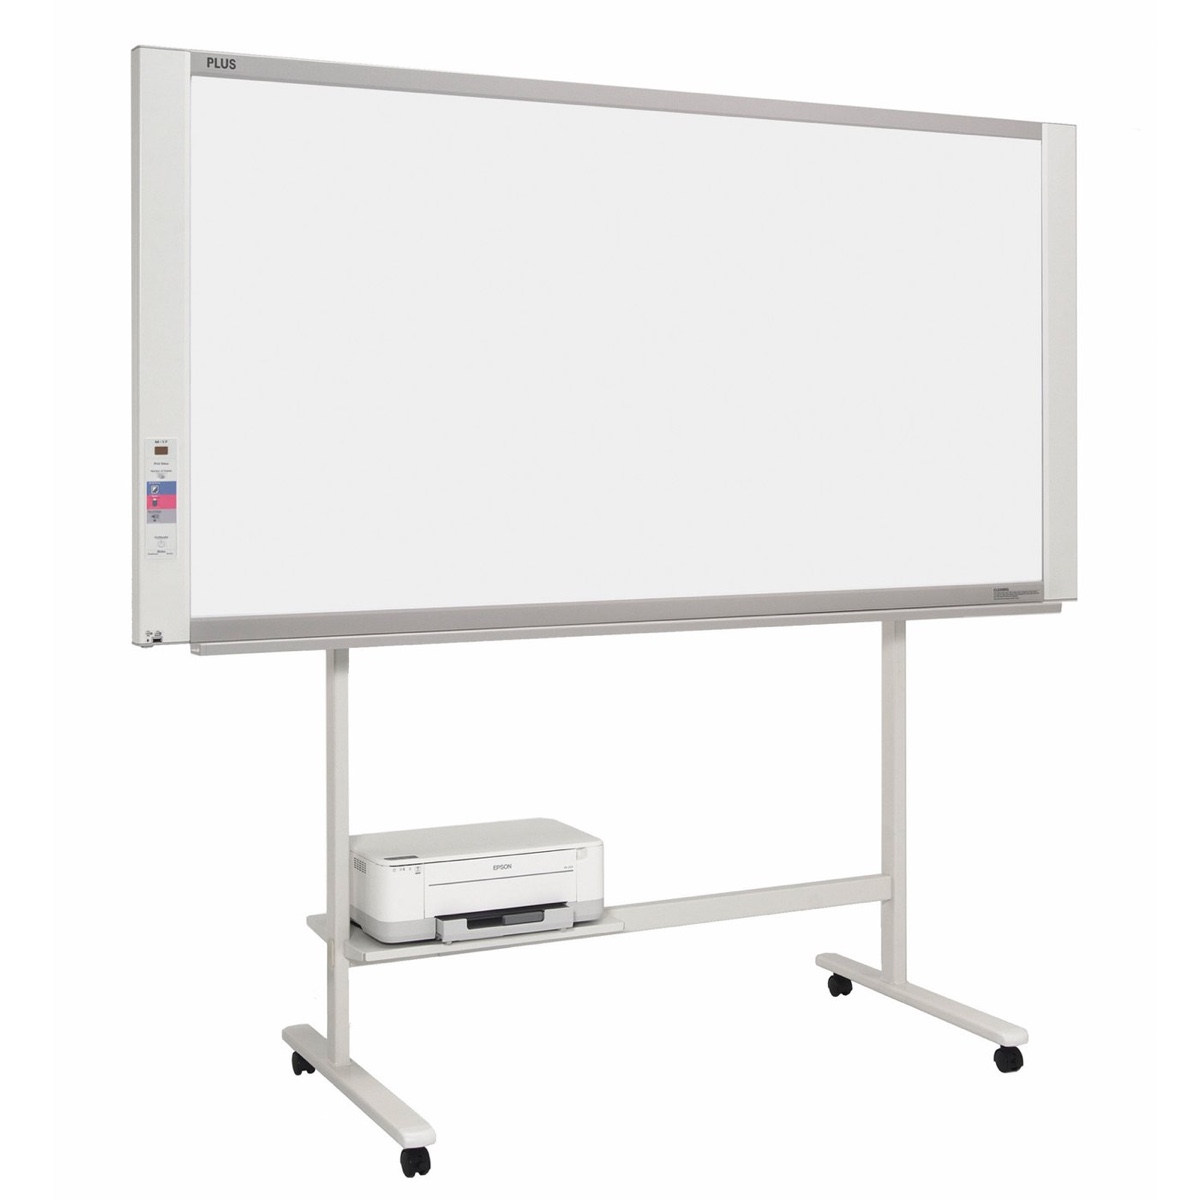 PLUS Whiteboards:  The PLUS Copyboard M-18W